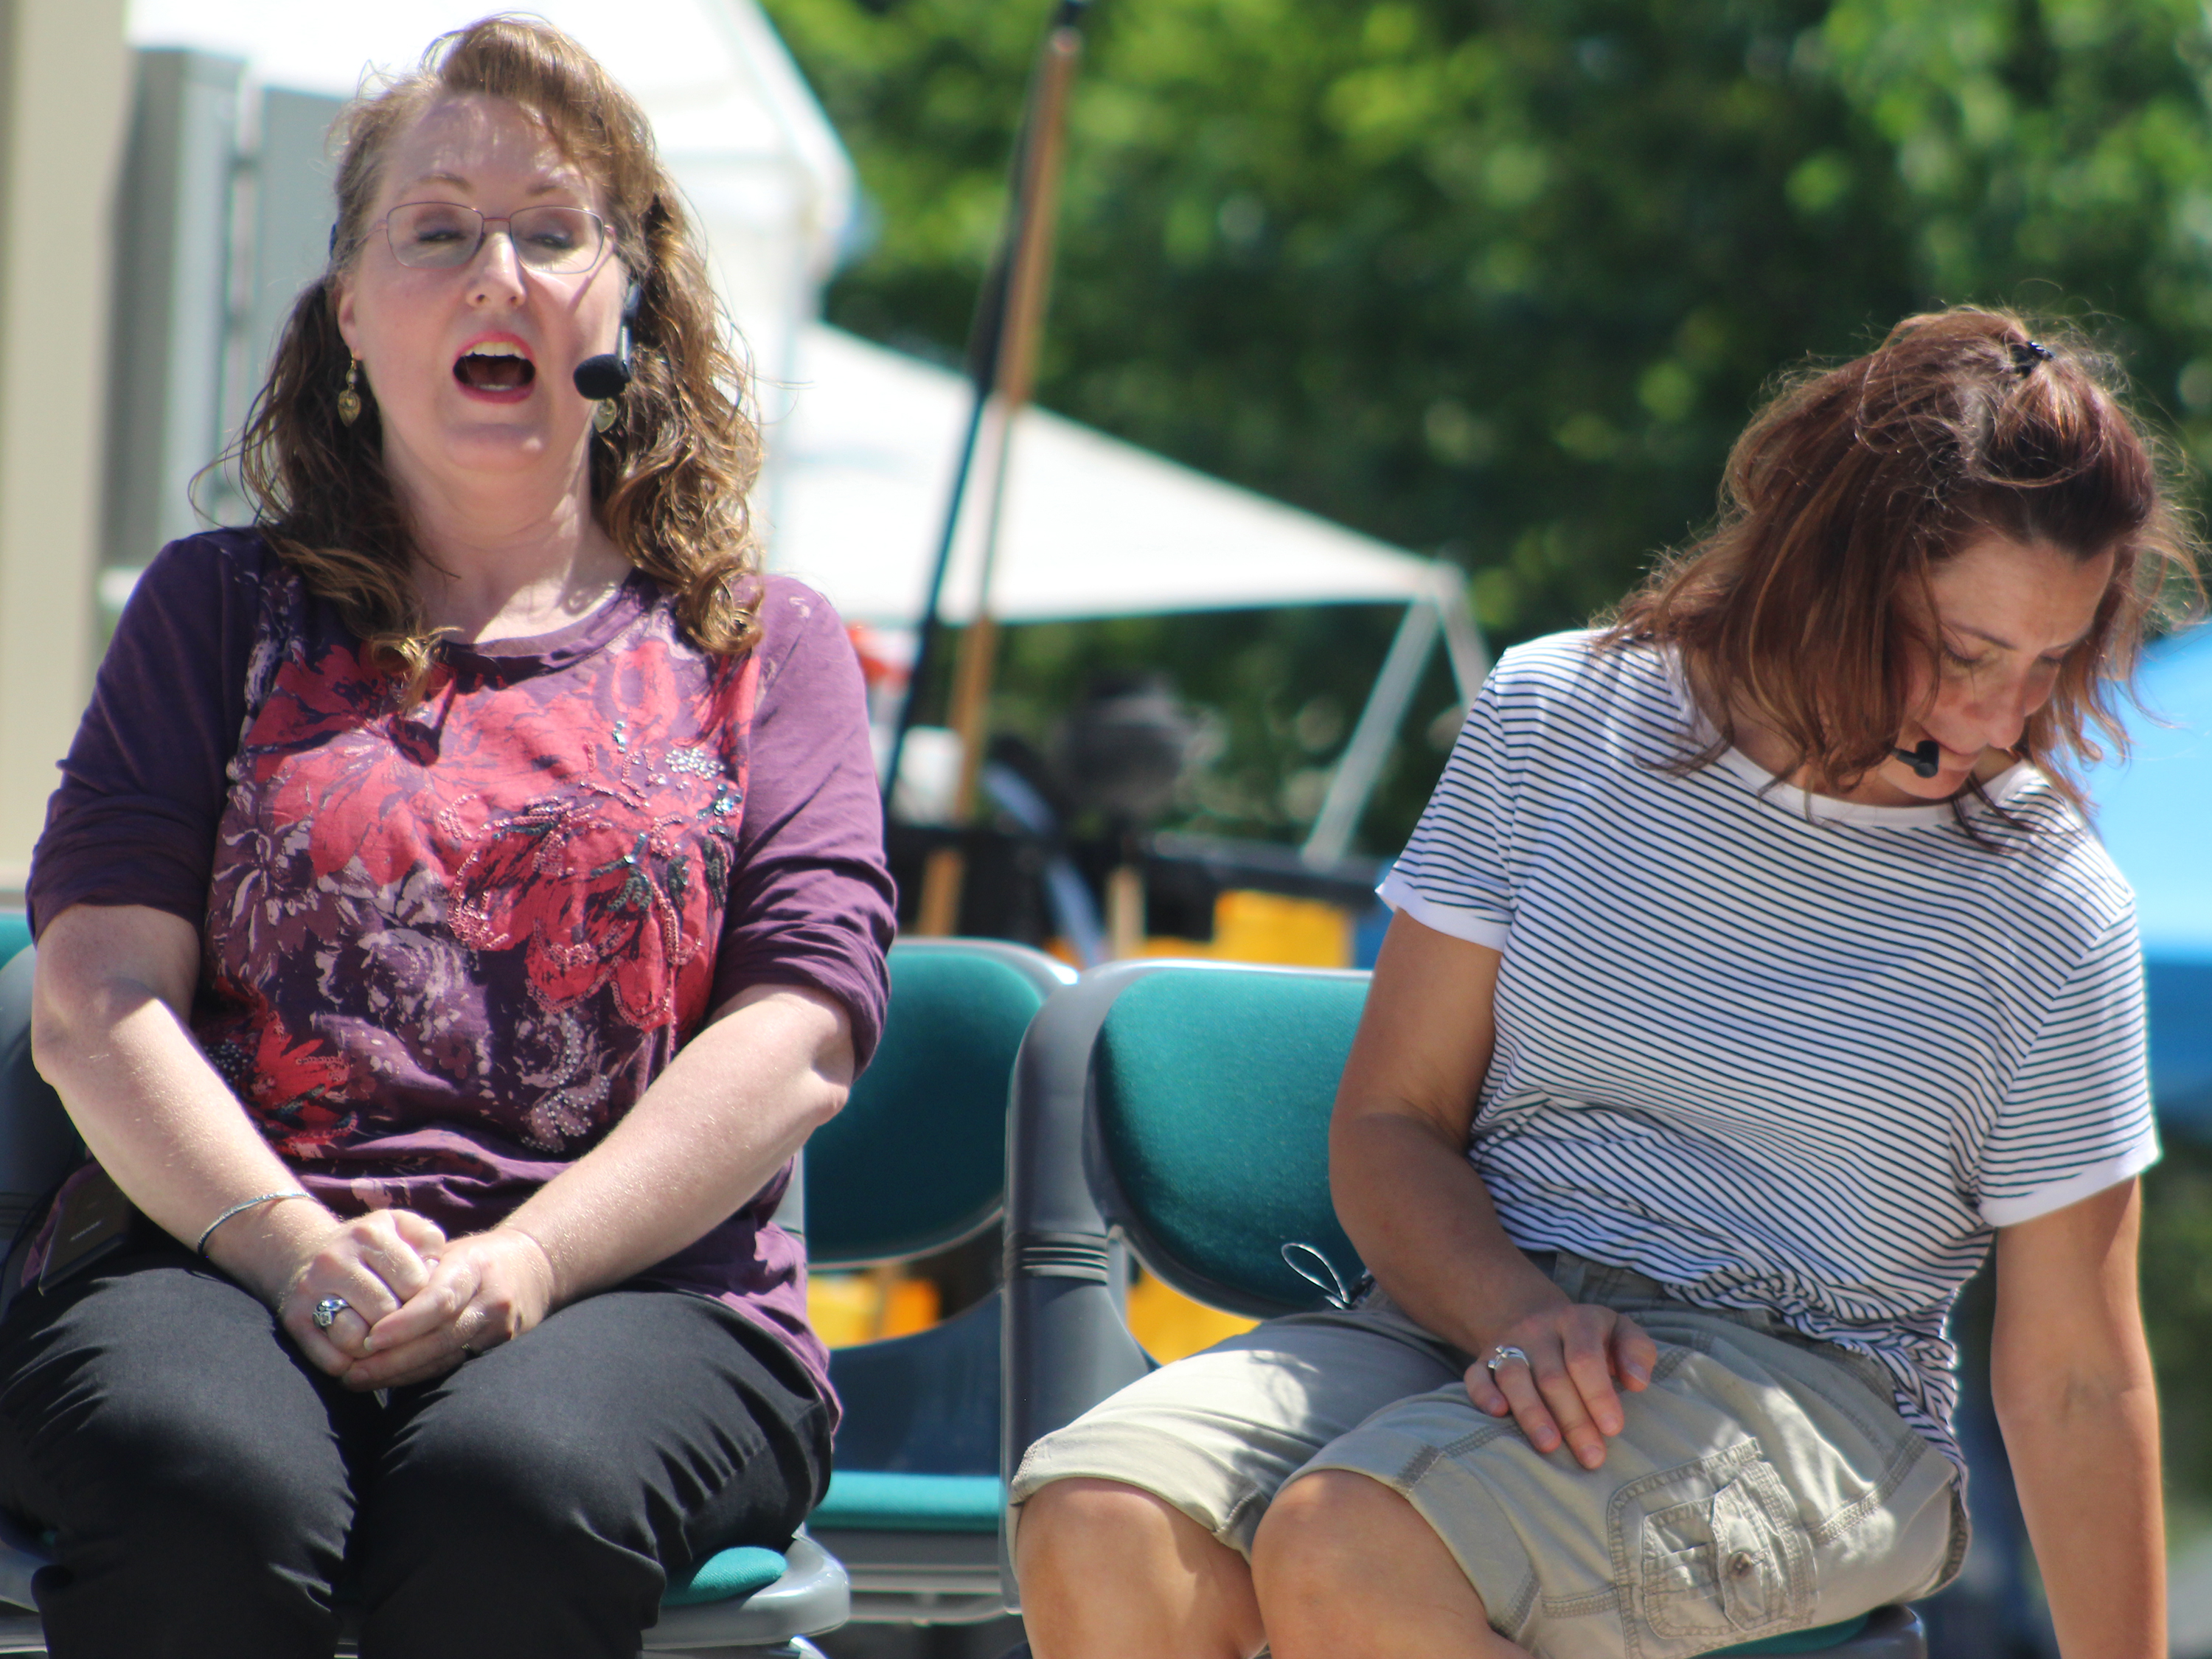 """Ginger, played by Sue Kluge, left, reacts to the judge's decision in a scene from """"Little Miss Fresno"""" as Doris, played by Jane Krueger, reaches for something in her bag. The one-act, written by Ara Watson and Mary Gallagher, was one of the theater pieces performed for Arts in the Park on June 12 at Franklin Park in Shawano.(Lee Pulaski 